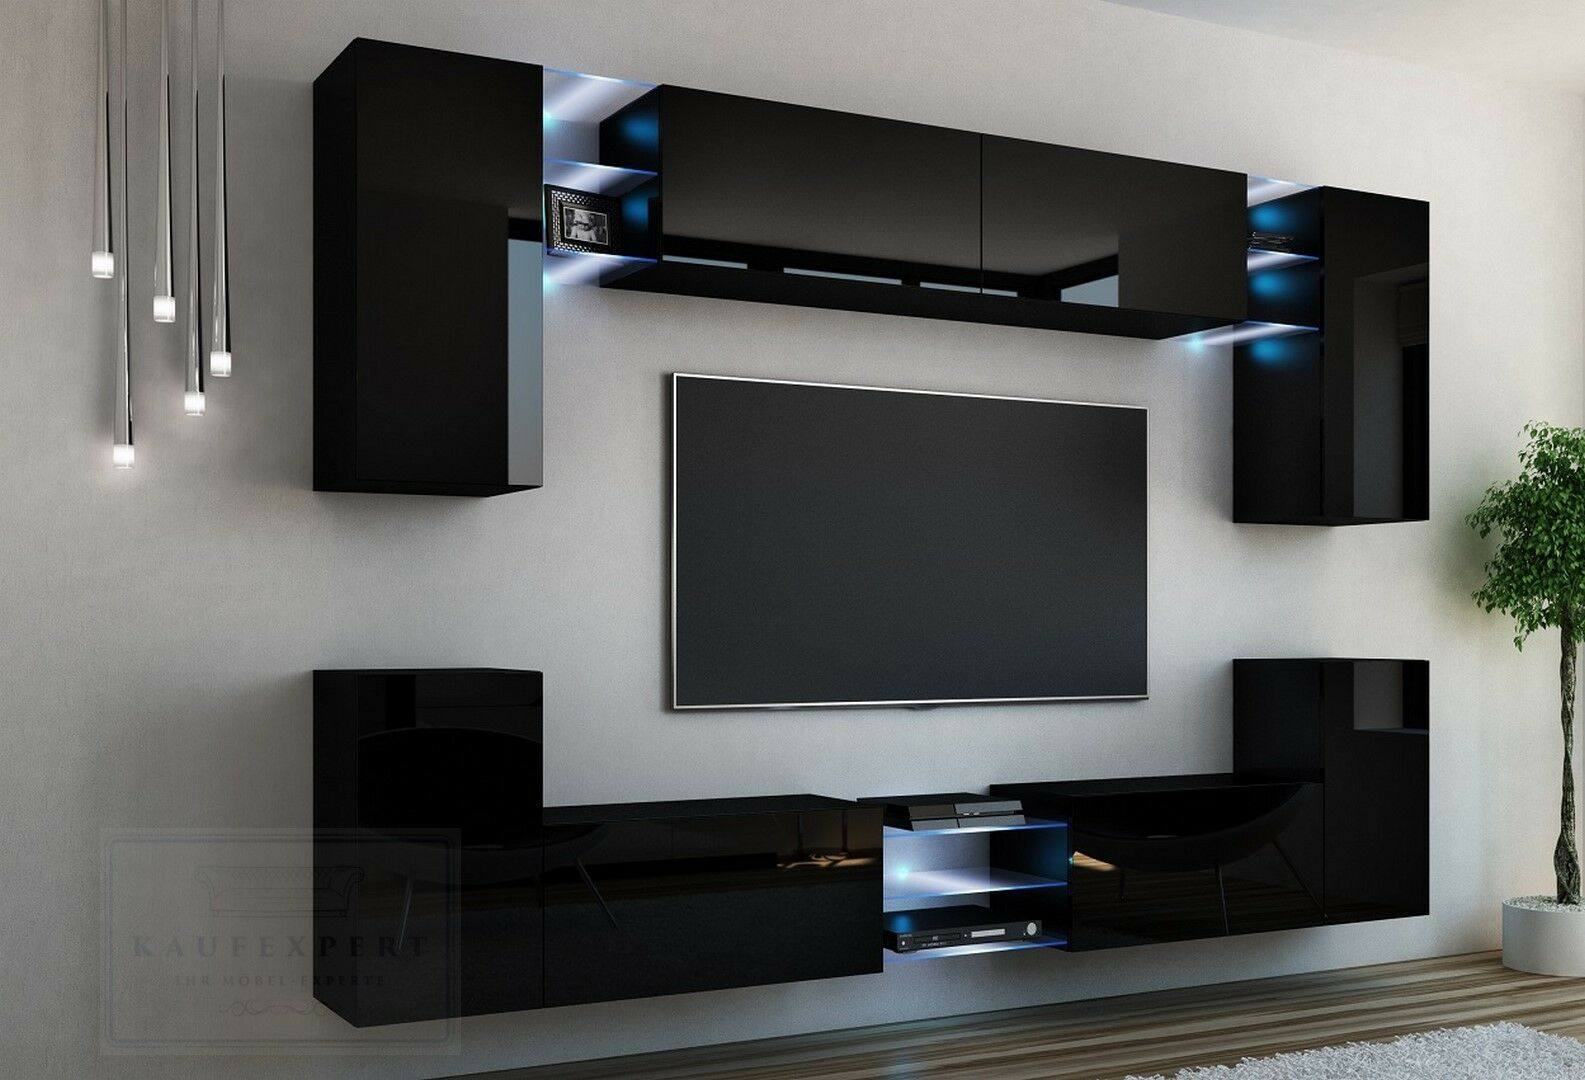 wohnwand galaxy schwarz hochglanz led beleuchtung anbauwand mediawand design eur 529 00. Black Bedroom Furniture Sets. Home Design Ideas